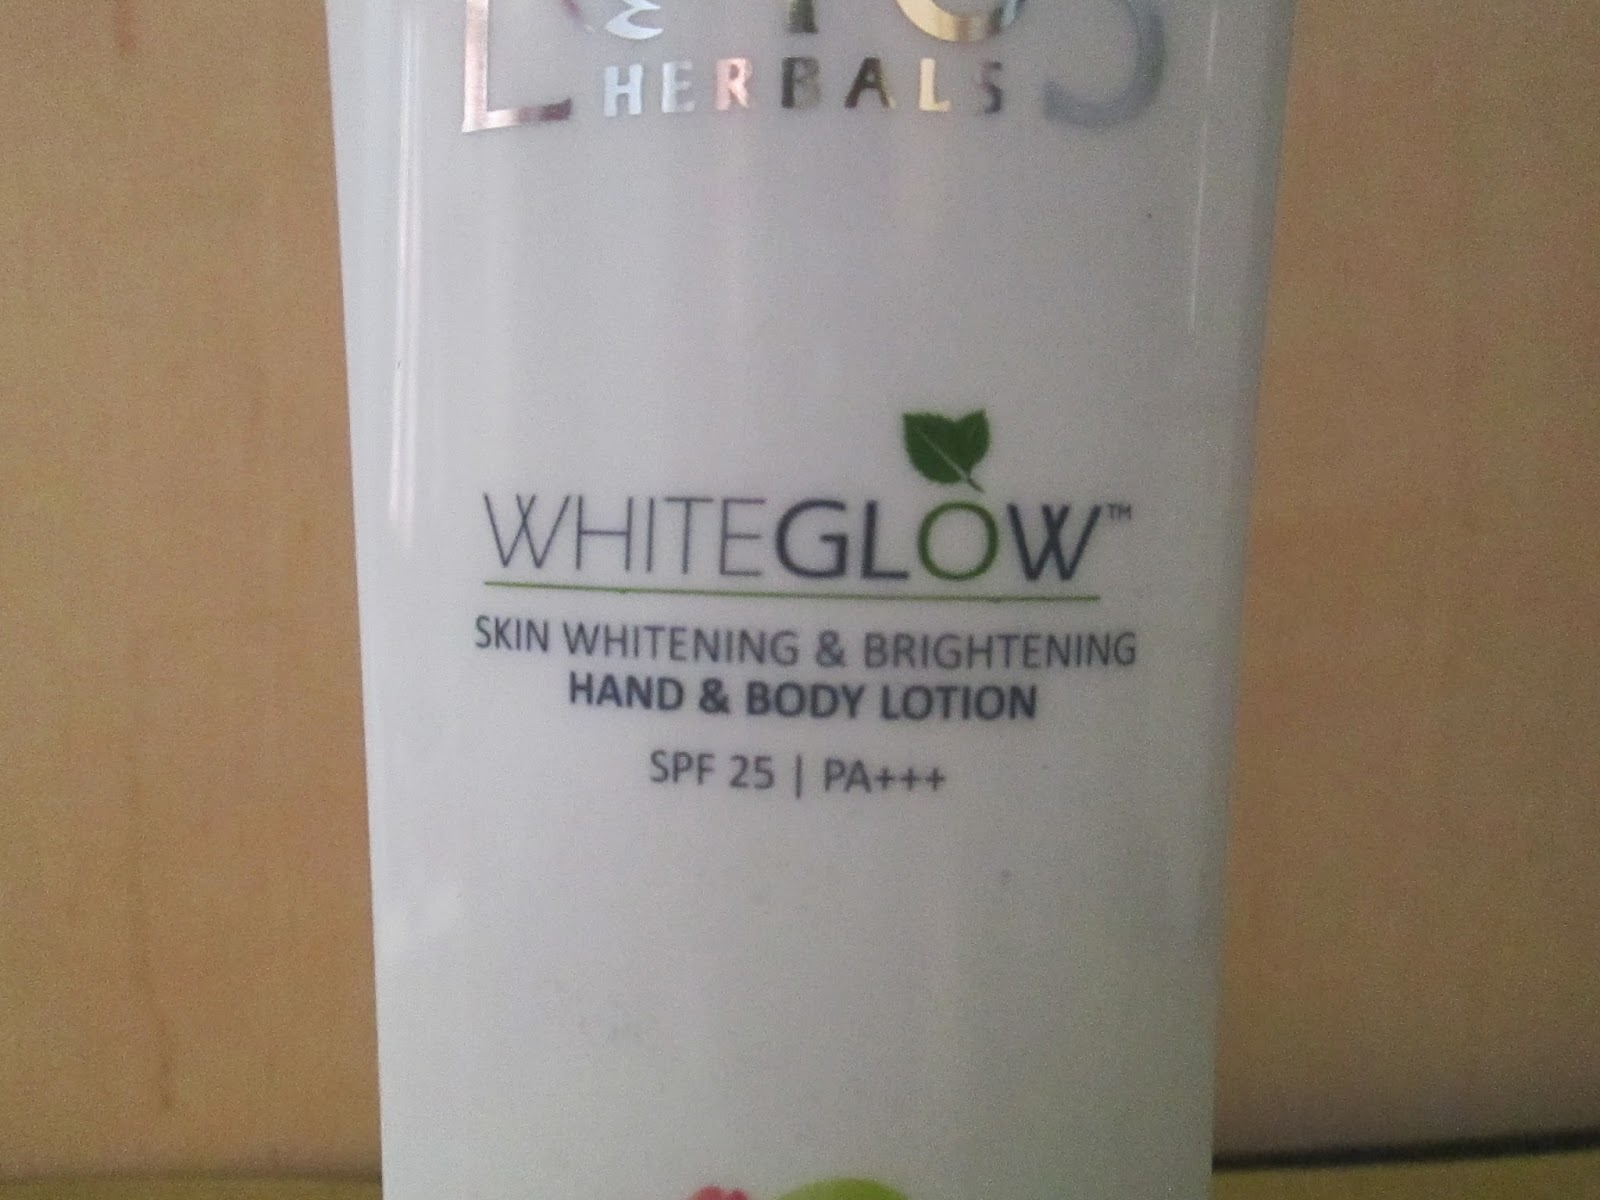 Lotus Herbals Whiteglow Skin Lightening Lotion Review